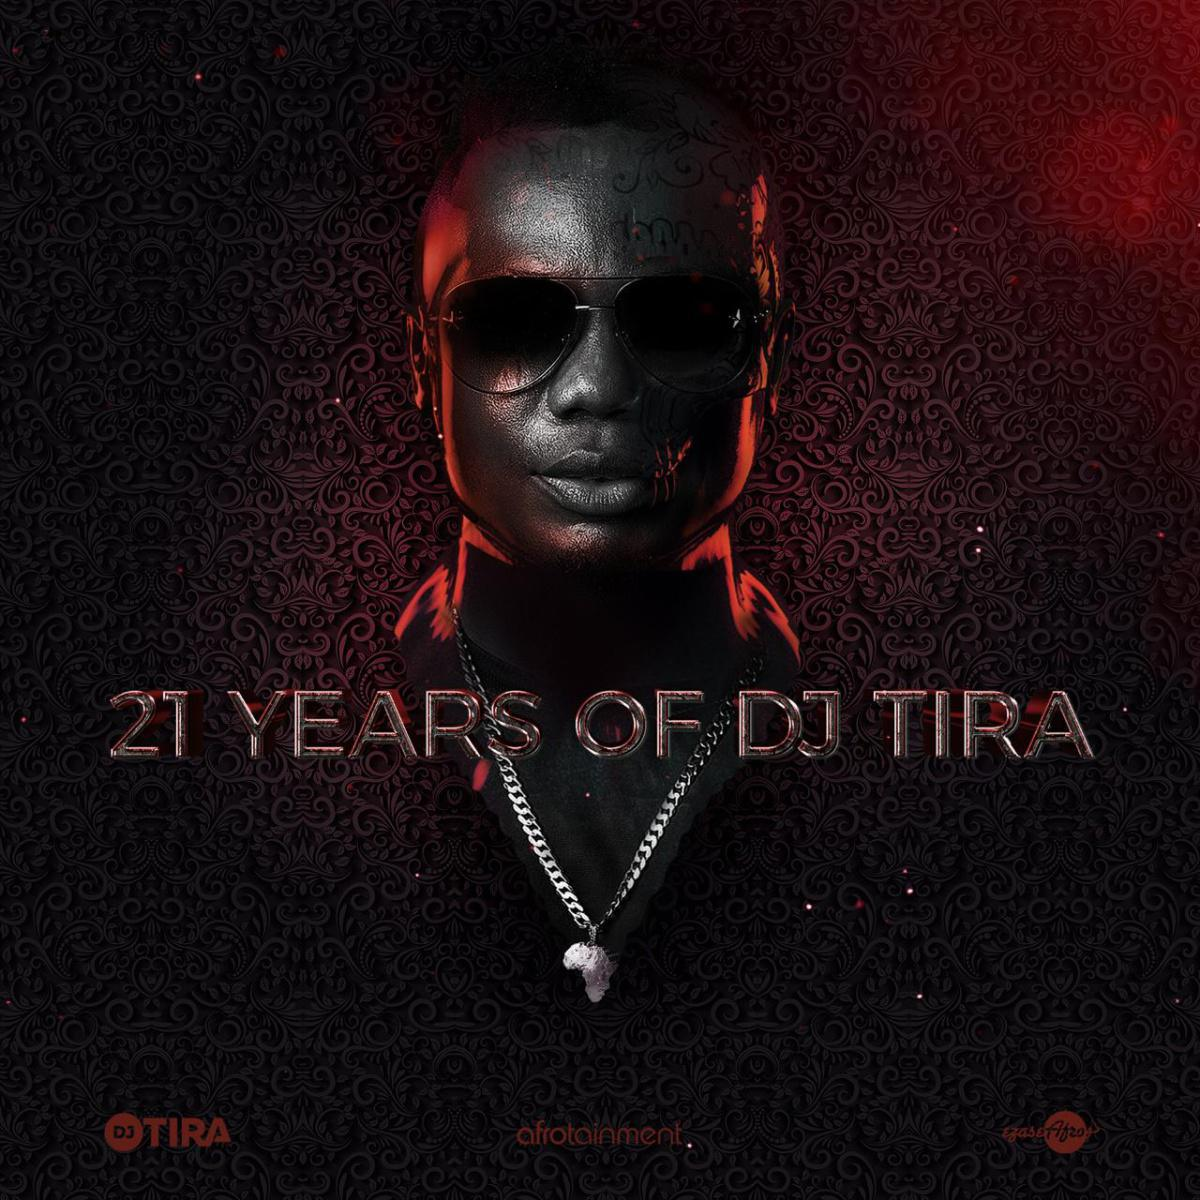 21 Years of Dj Tira